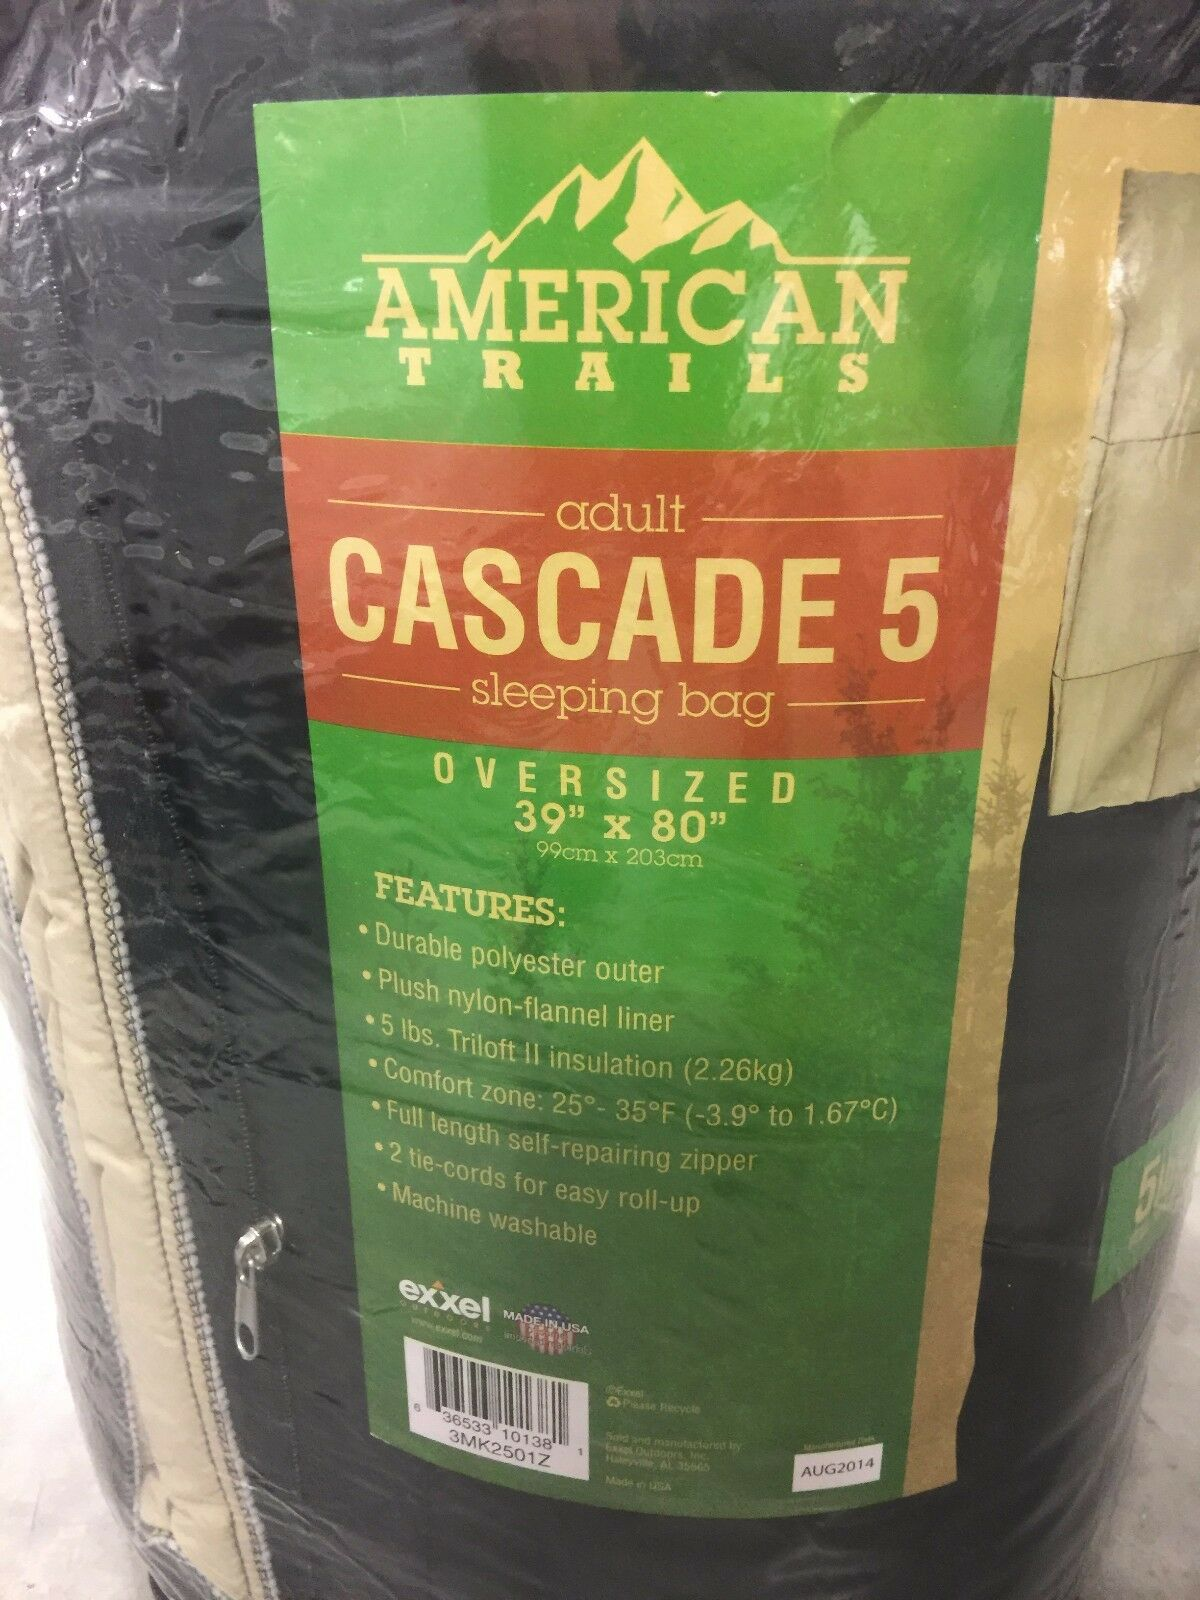 AMERICAN TRAILS CASCADE 5 OVERSIZED ADULT 39 X 80 SLEEPING BAG CAMPING OUTDOOR